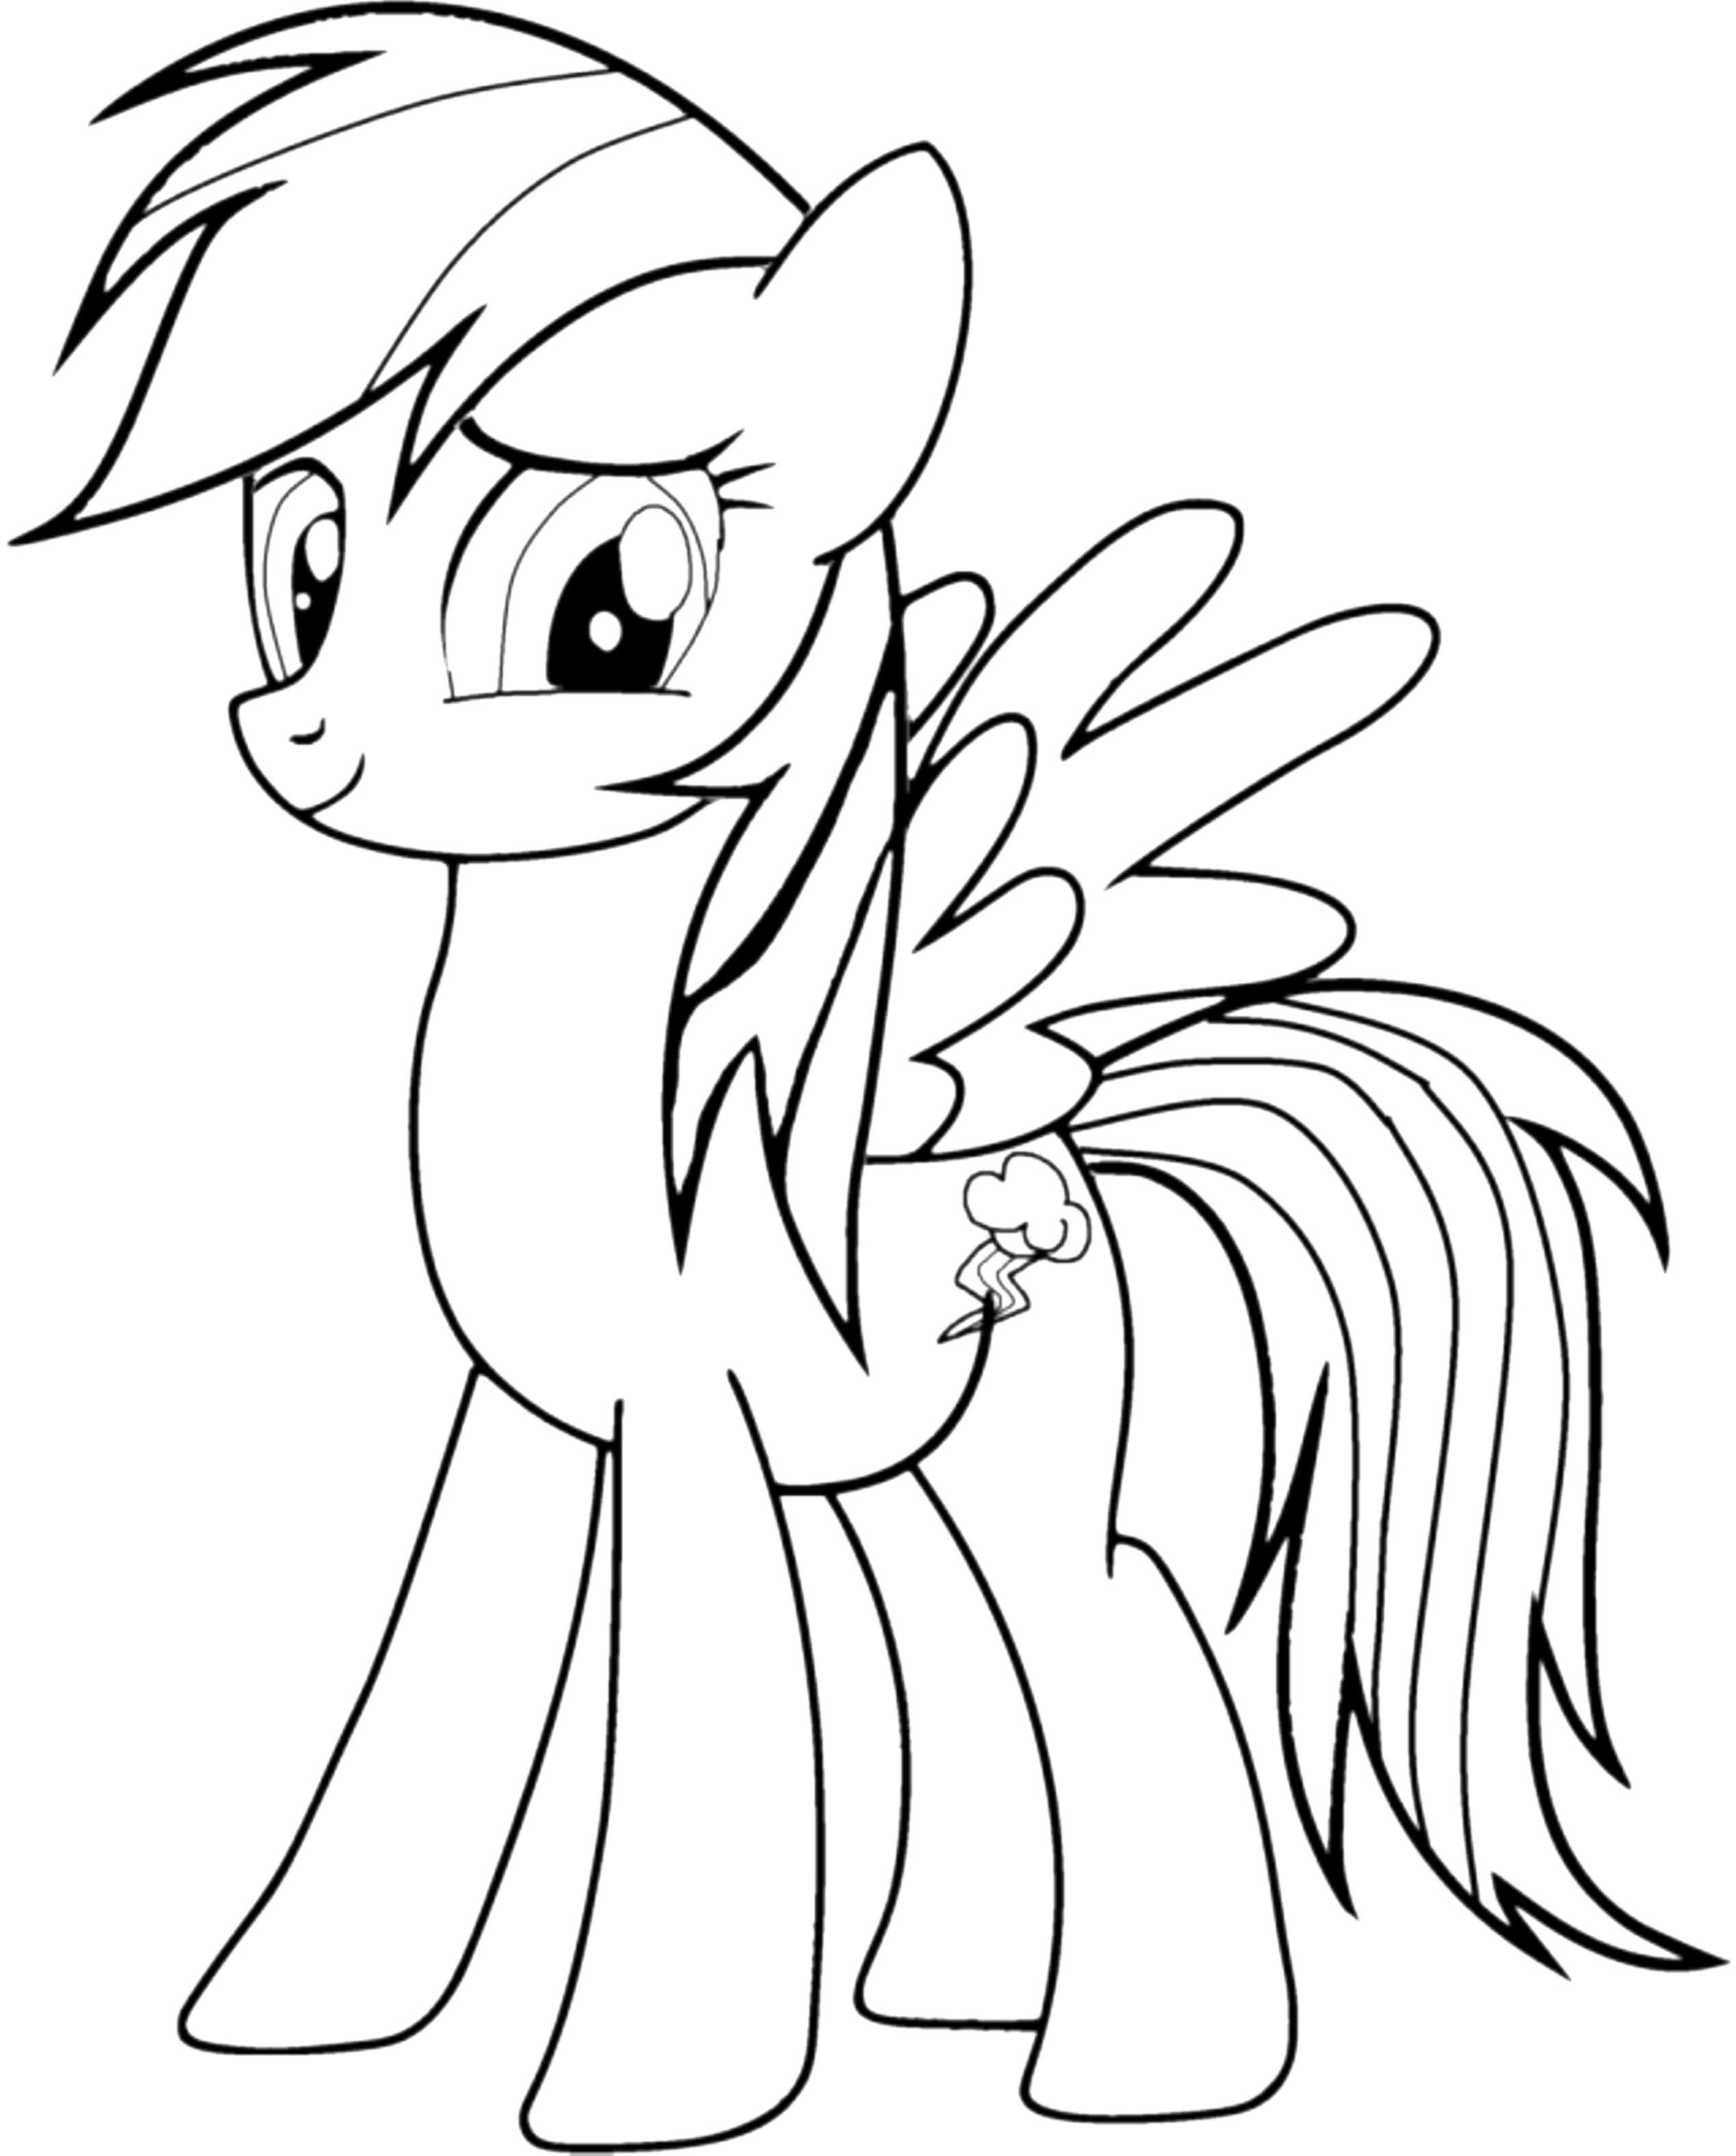 Rainbow dash coloring pages best coloring pages for kids for Free coloring book pages to print